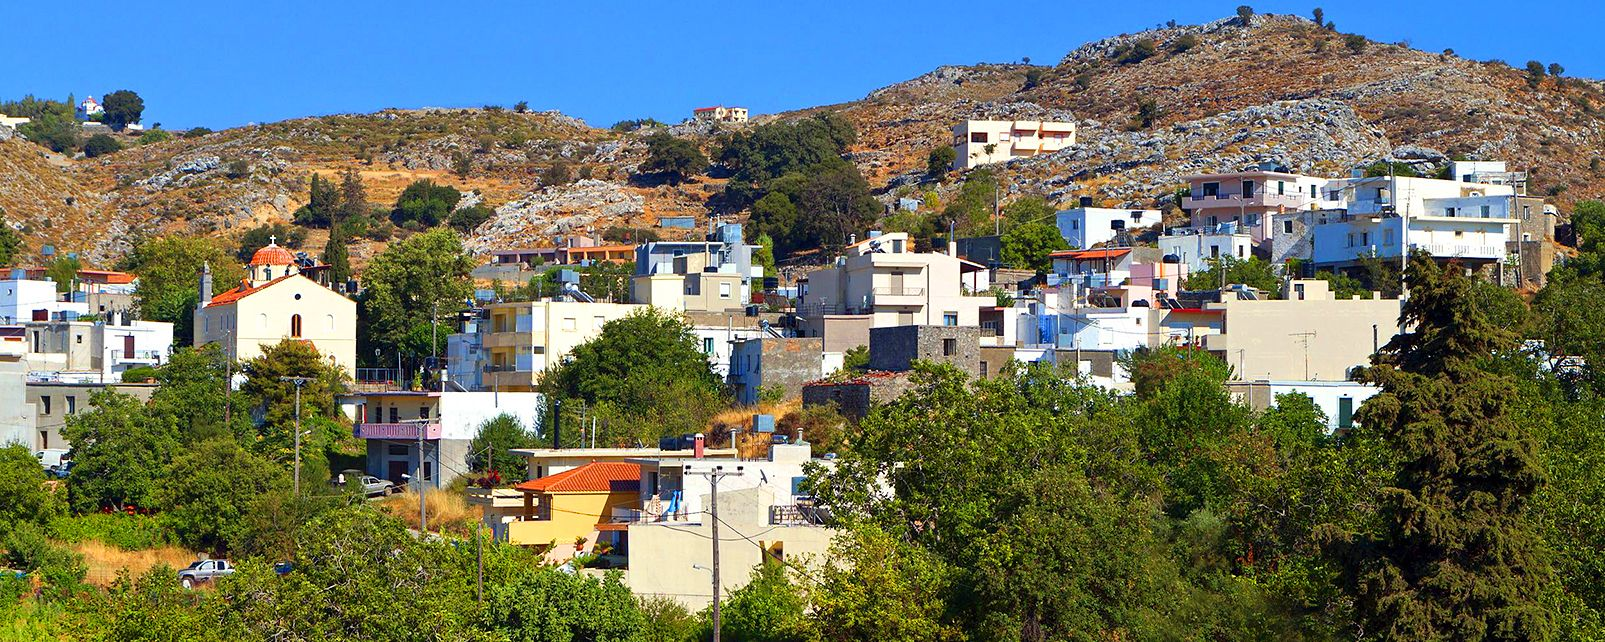 The villages, Landscapes, Crete